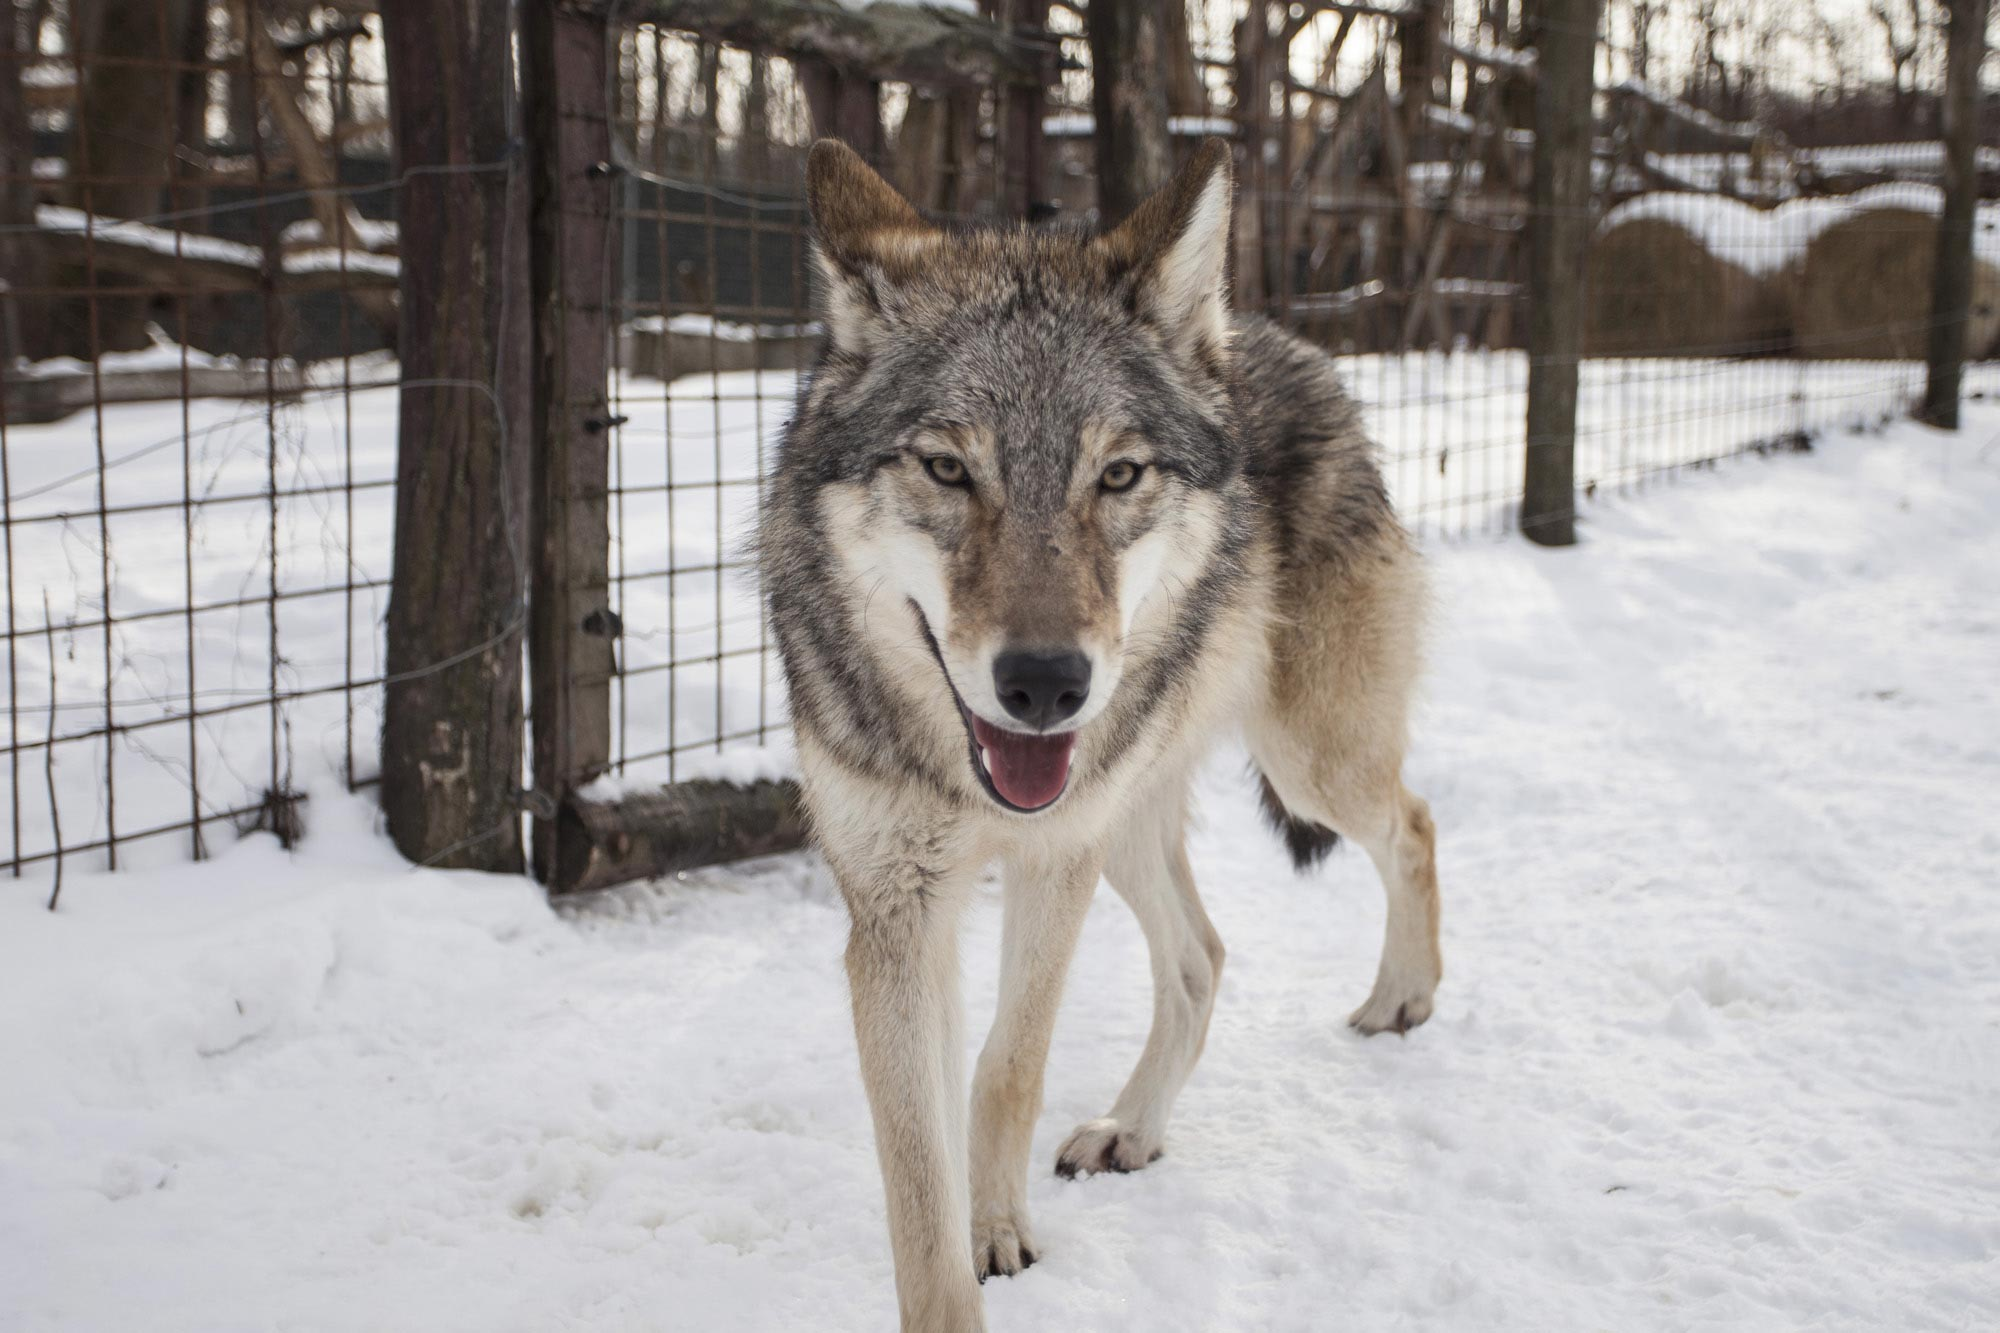 Wolves Bond: In Separation Adult Wolves Miss Their Human Handler Similar to Dogs